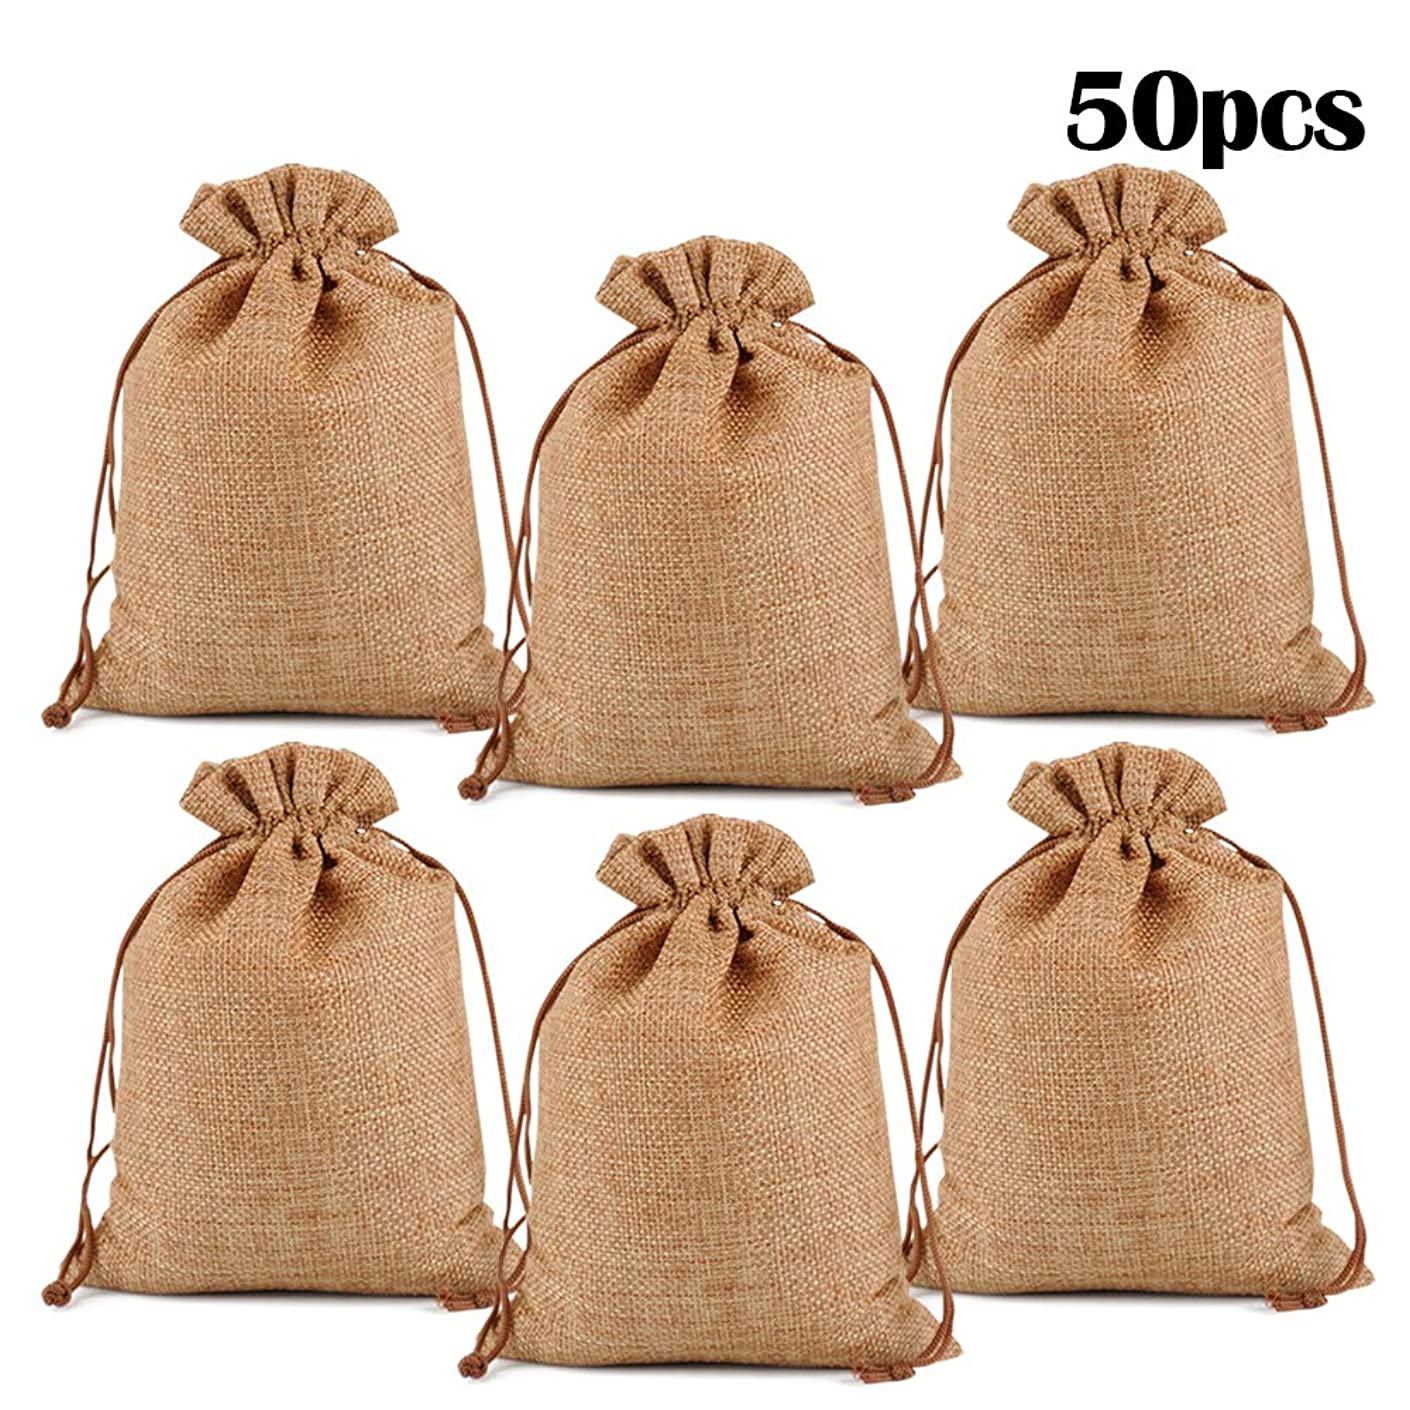 "Lucky Monet 25/50/100PCS Burlap Gift Bags Wedding Hessian Jute Bags Linen Jewelry Pouches with Drawstring for Birthday, Party, Wedding Favors, Present, Art and DIY Craft (50Pcs, Coffee, 4"" x 6"")"